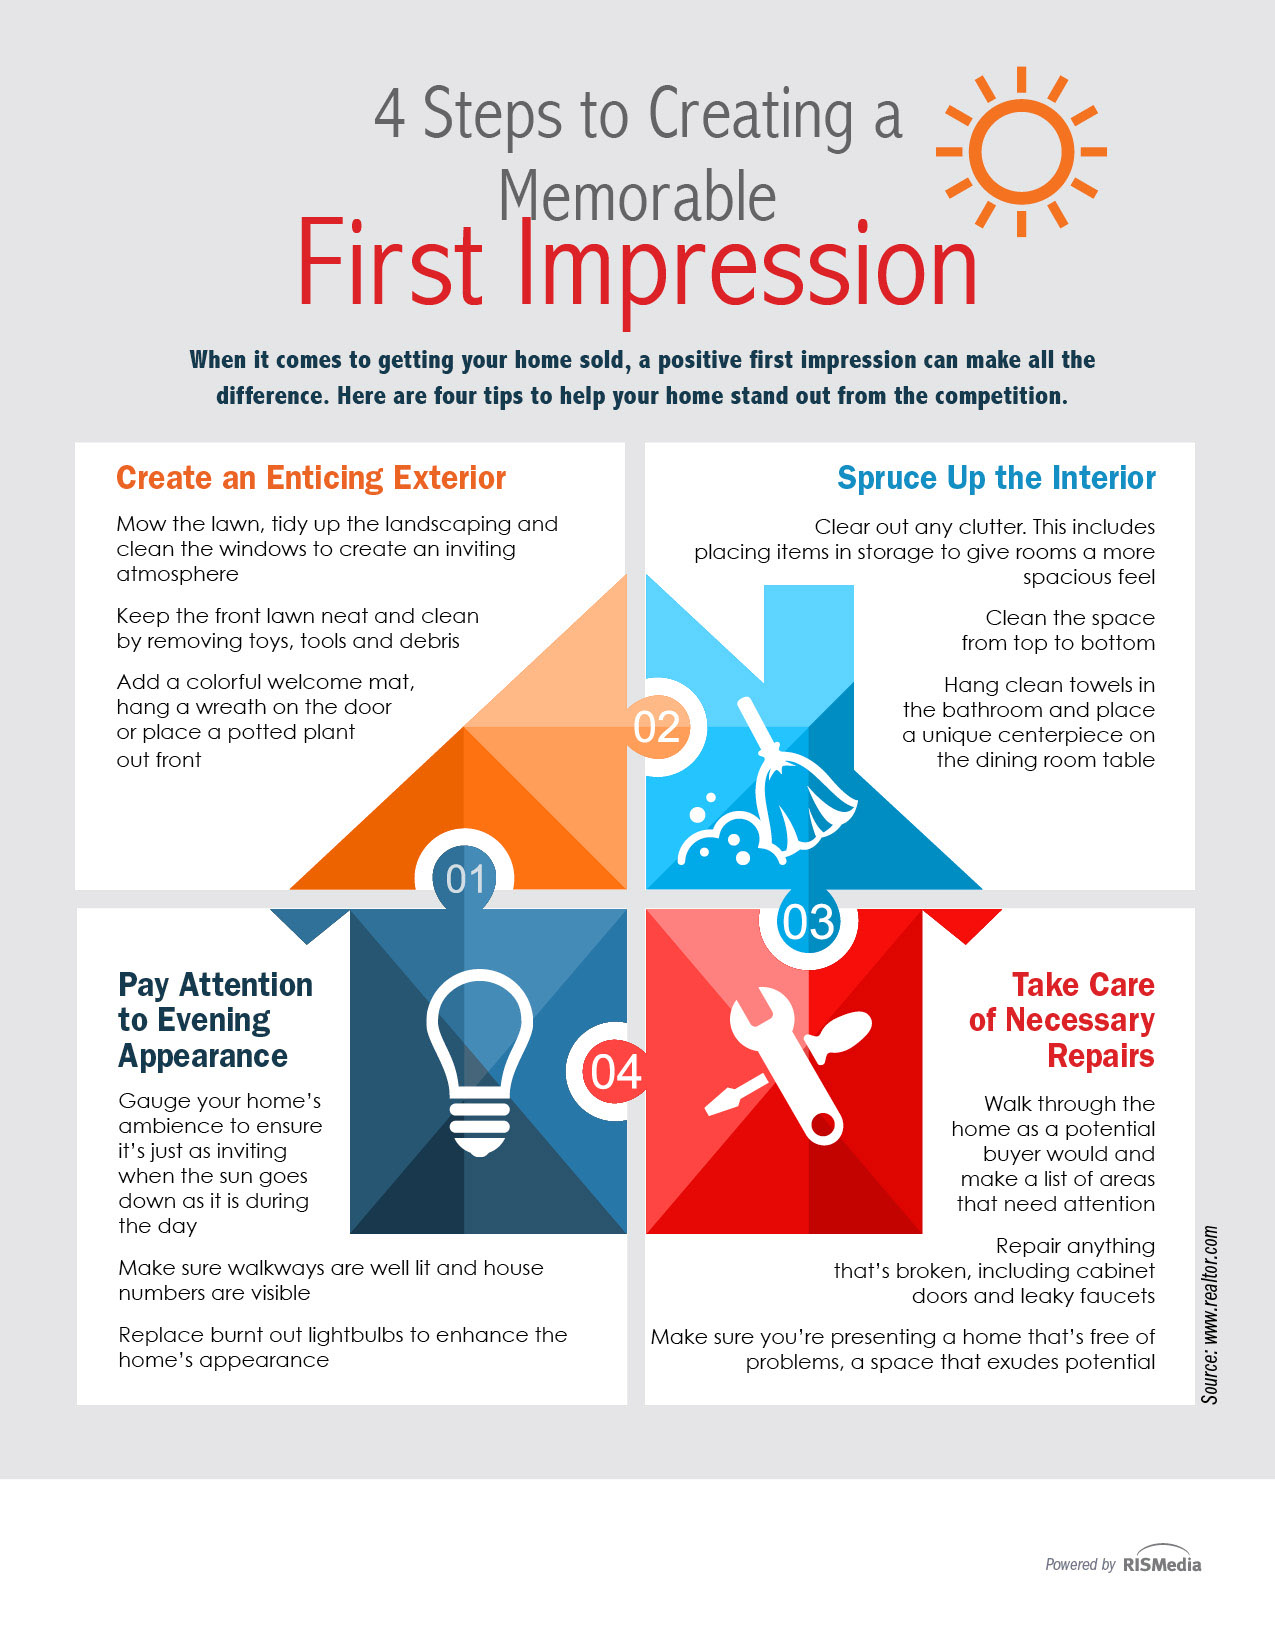 4 Steps to Creating a Memorable First Impression